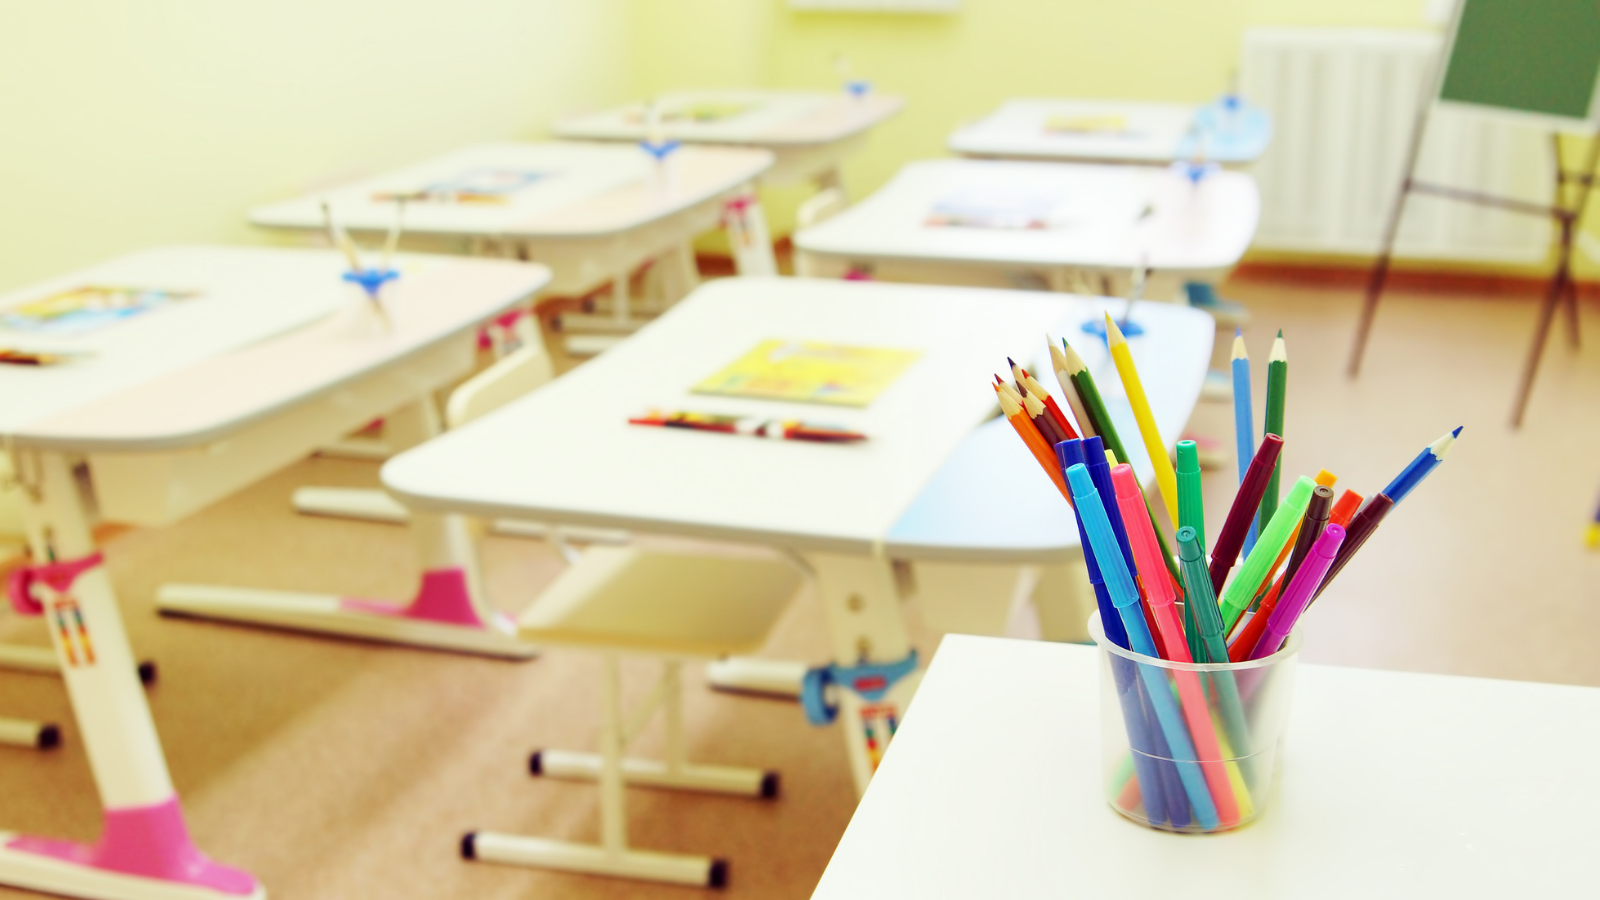 Preschool Assessments 101: What Early Educators Need to Know